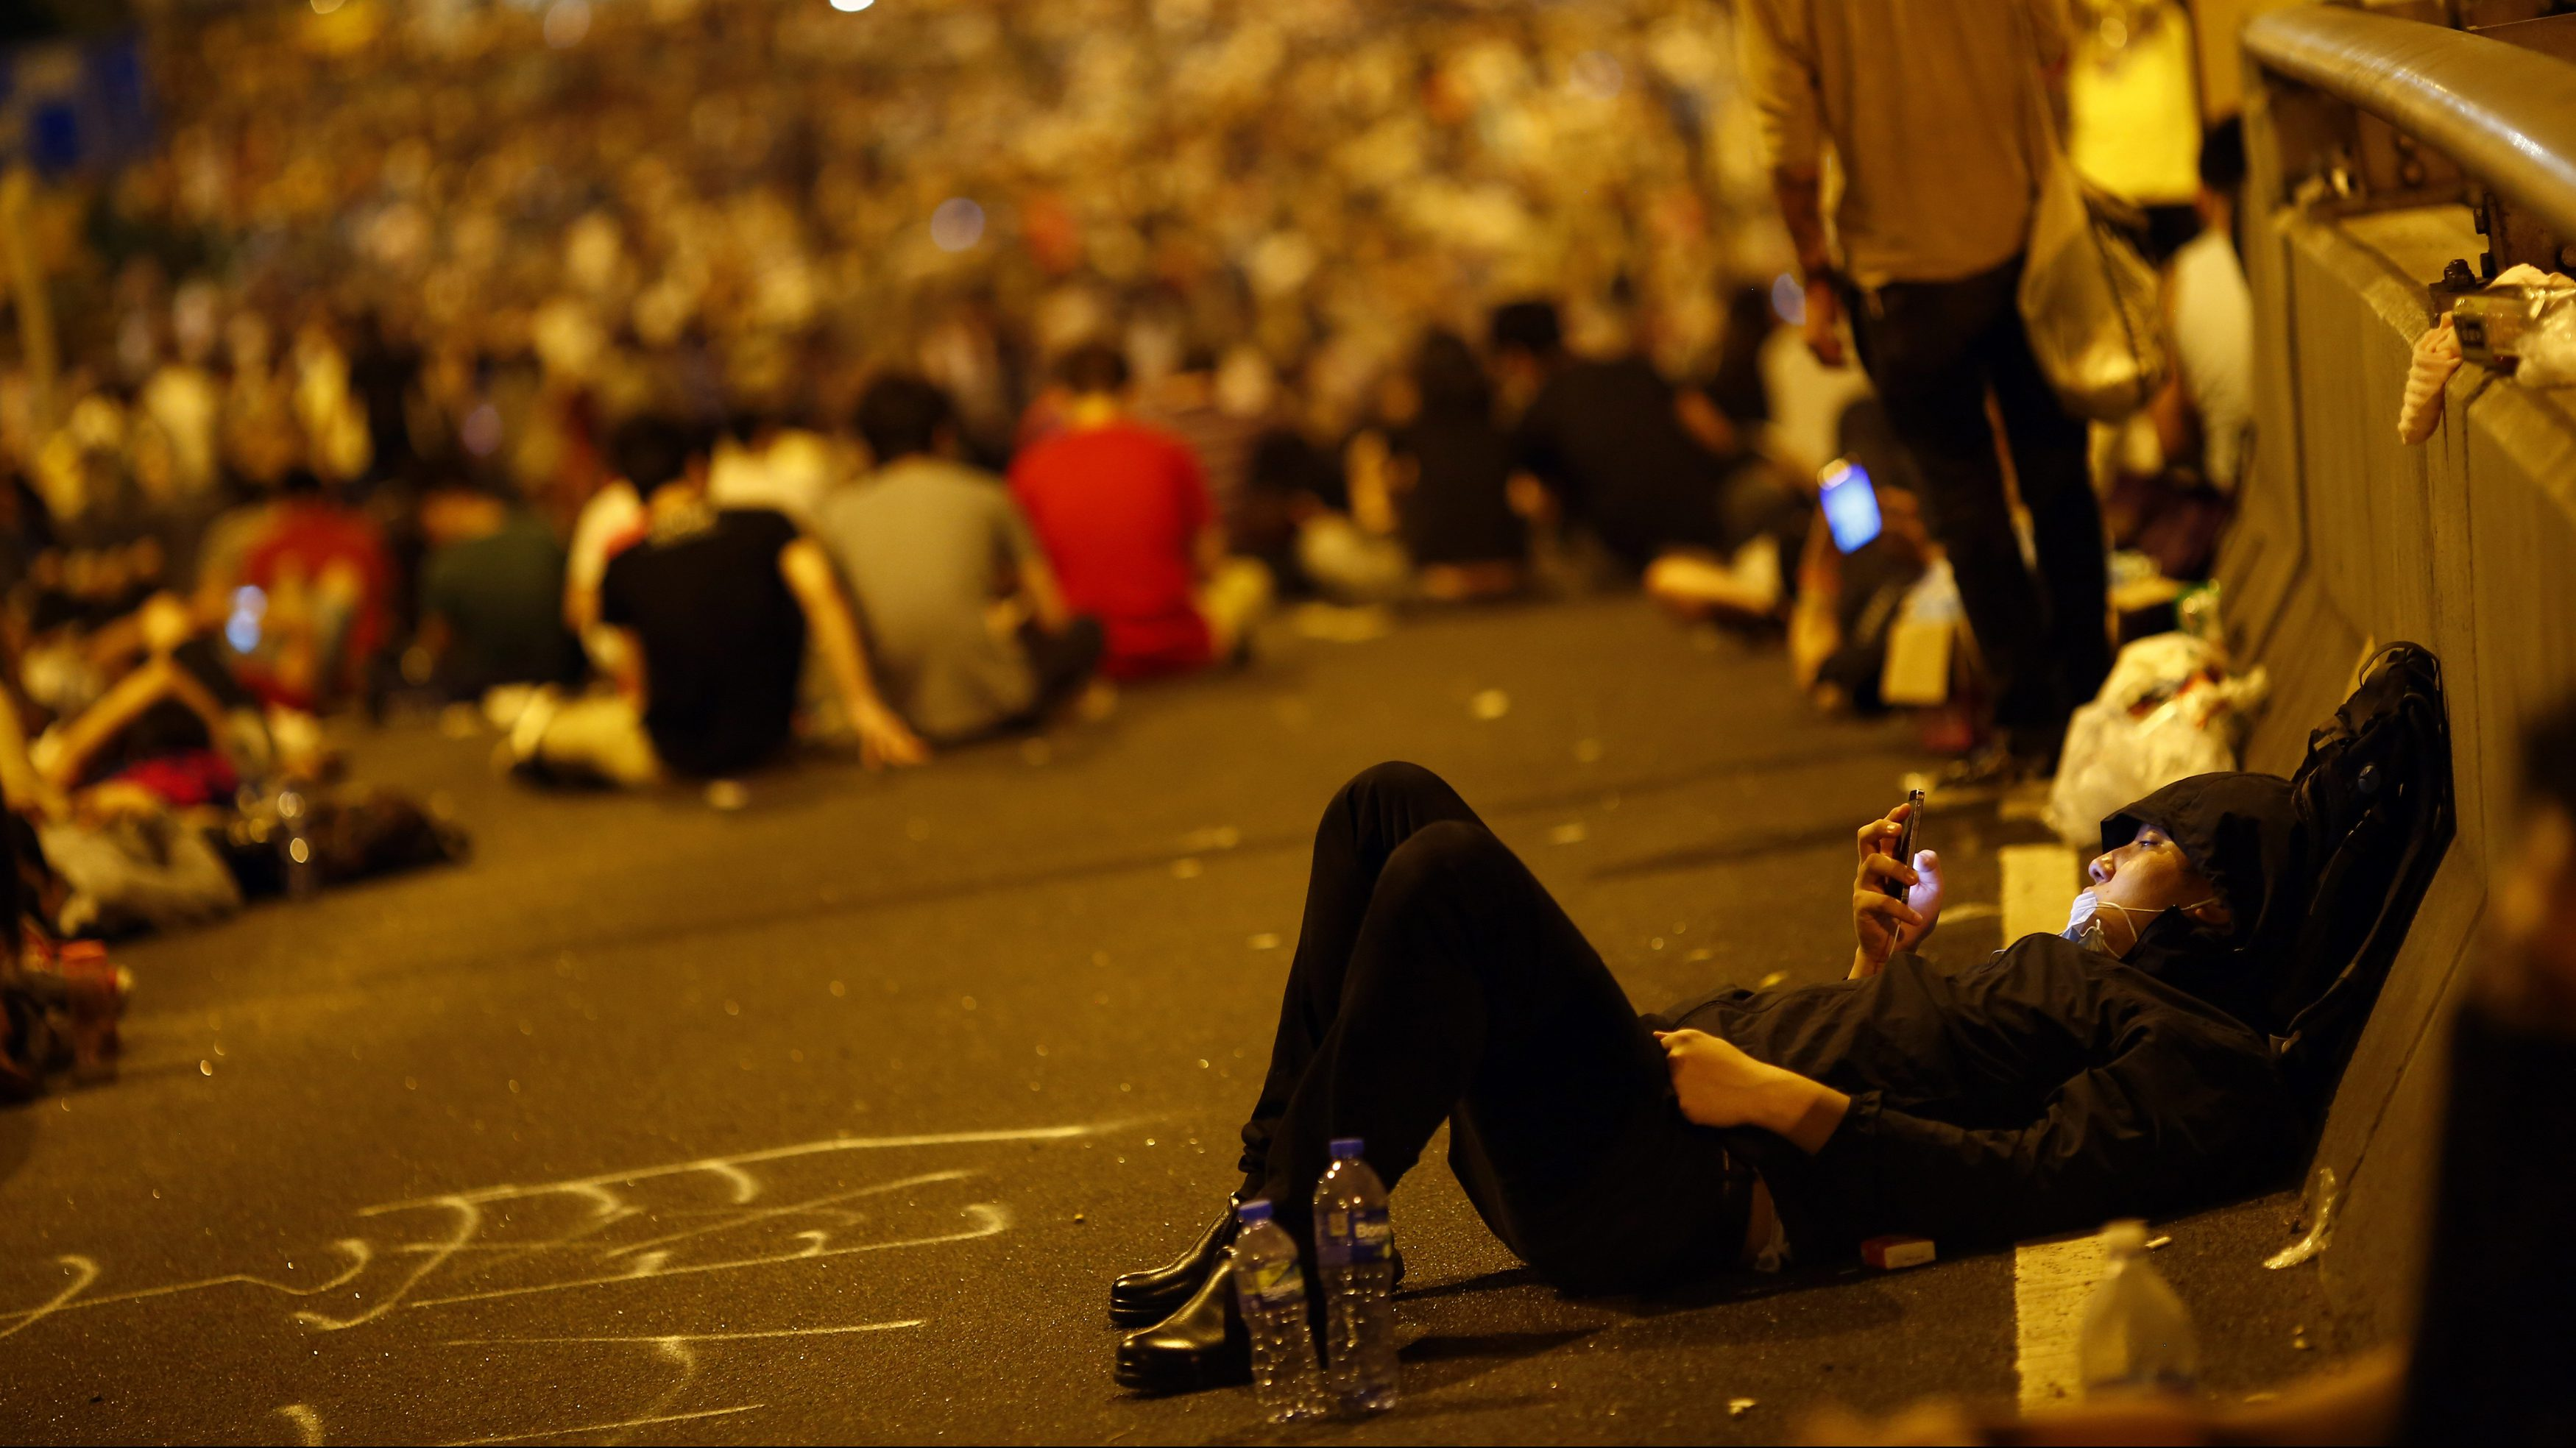 A protester looks at his mobile phone as he and others block the main street to the financial Central district outside the government headquarters in Hong Kong, September 29, 2014. Riot police advanced on Hong Kong democracy protesters in the early hours of Monday, firing volleys of tear gas after launching a baton-charge in the worst unrest there since China took back control of the former British colony two decades ago.